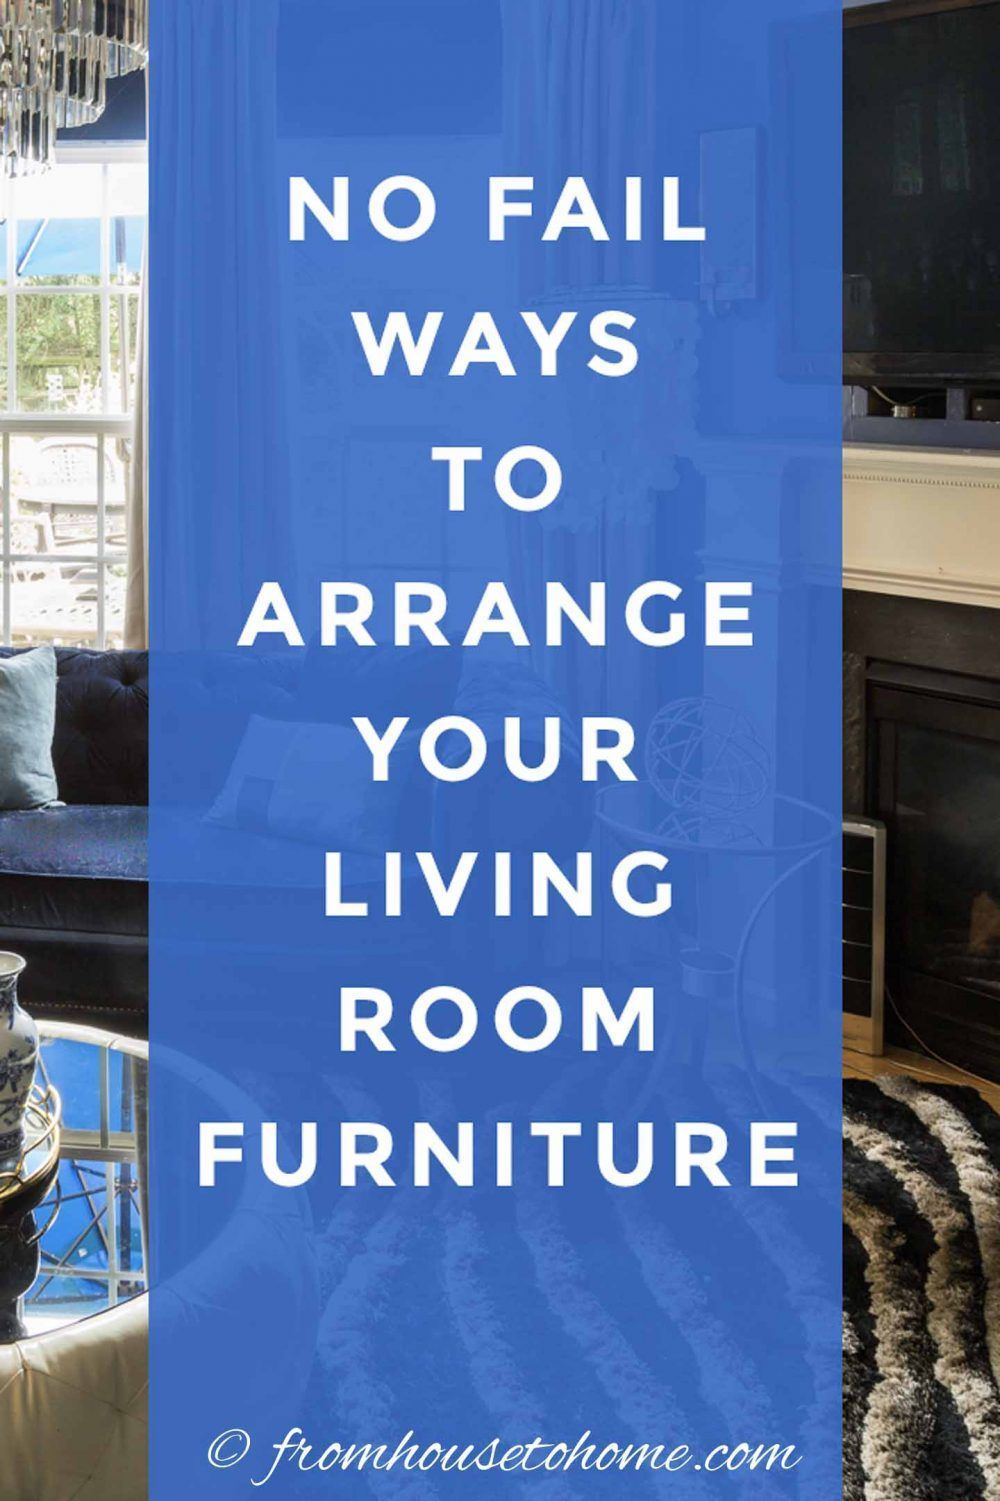 Learn to make the best use of your space with these furniture arrangement tips and living room layouts...even if it has a fireplace and a TV. #fromhousetohome #livingroomlayouts #livingroom #homedecorideas  #decoratingtips #interiordecoratingtips